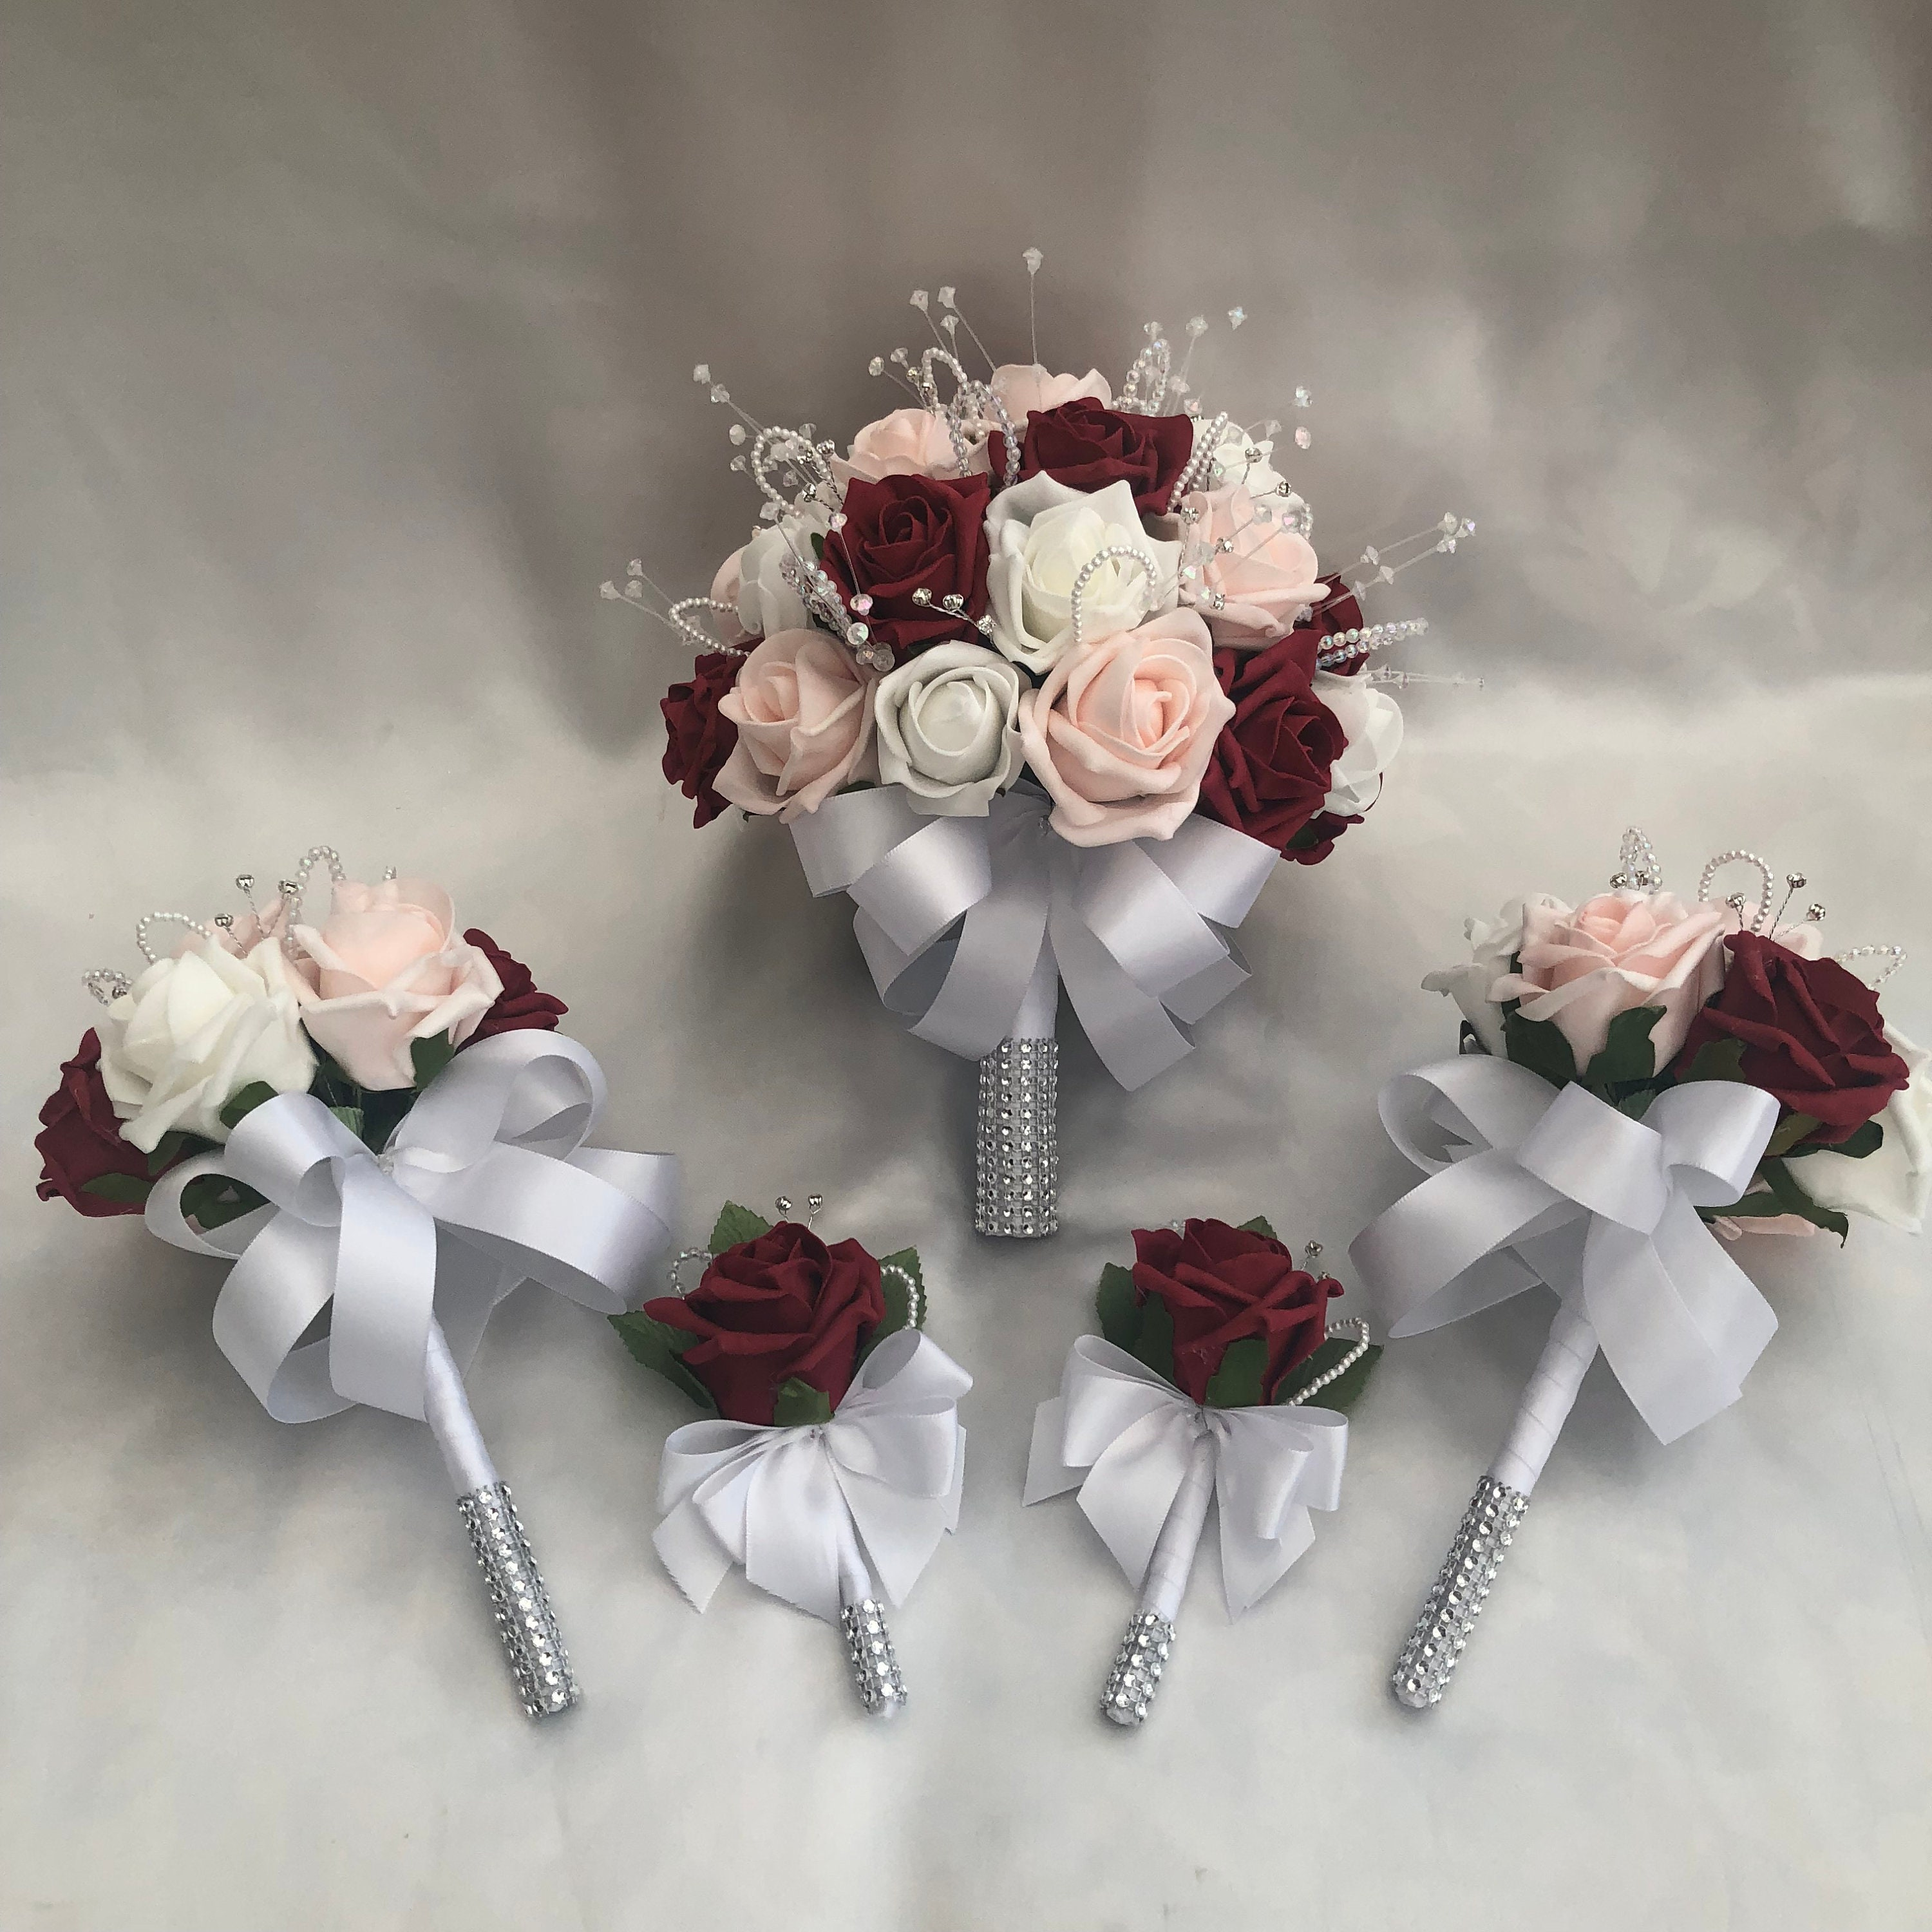 Artificial Wedding Bouquets.Artificial Wedding Flowers Brides Posy Bouquet With 2 Flower